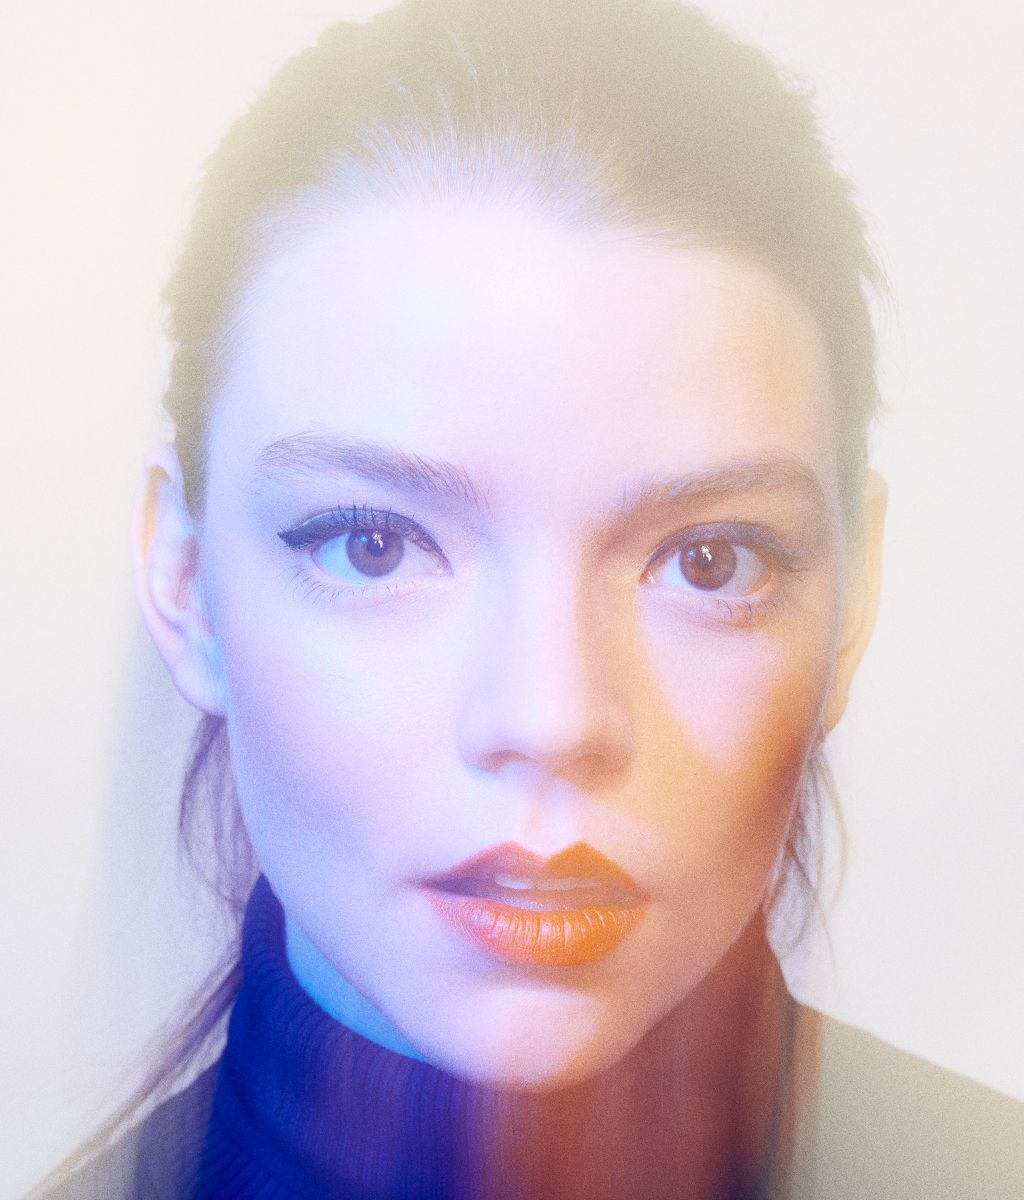 f79c3dff09 Anya Taylor-Joy Is Ready for Her Close-Up